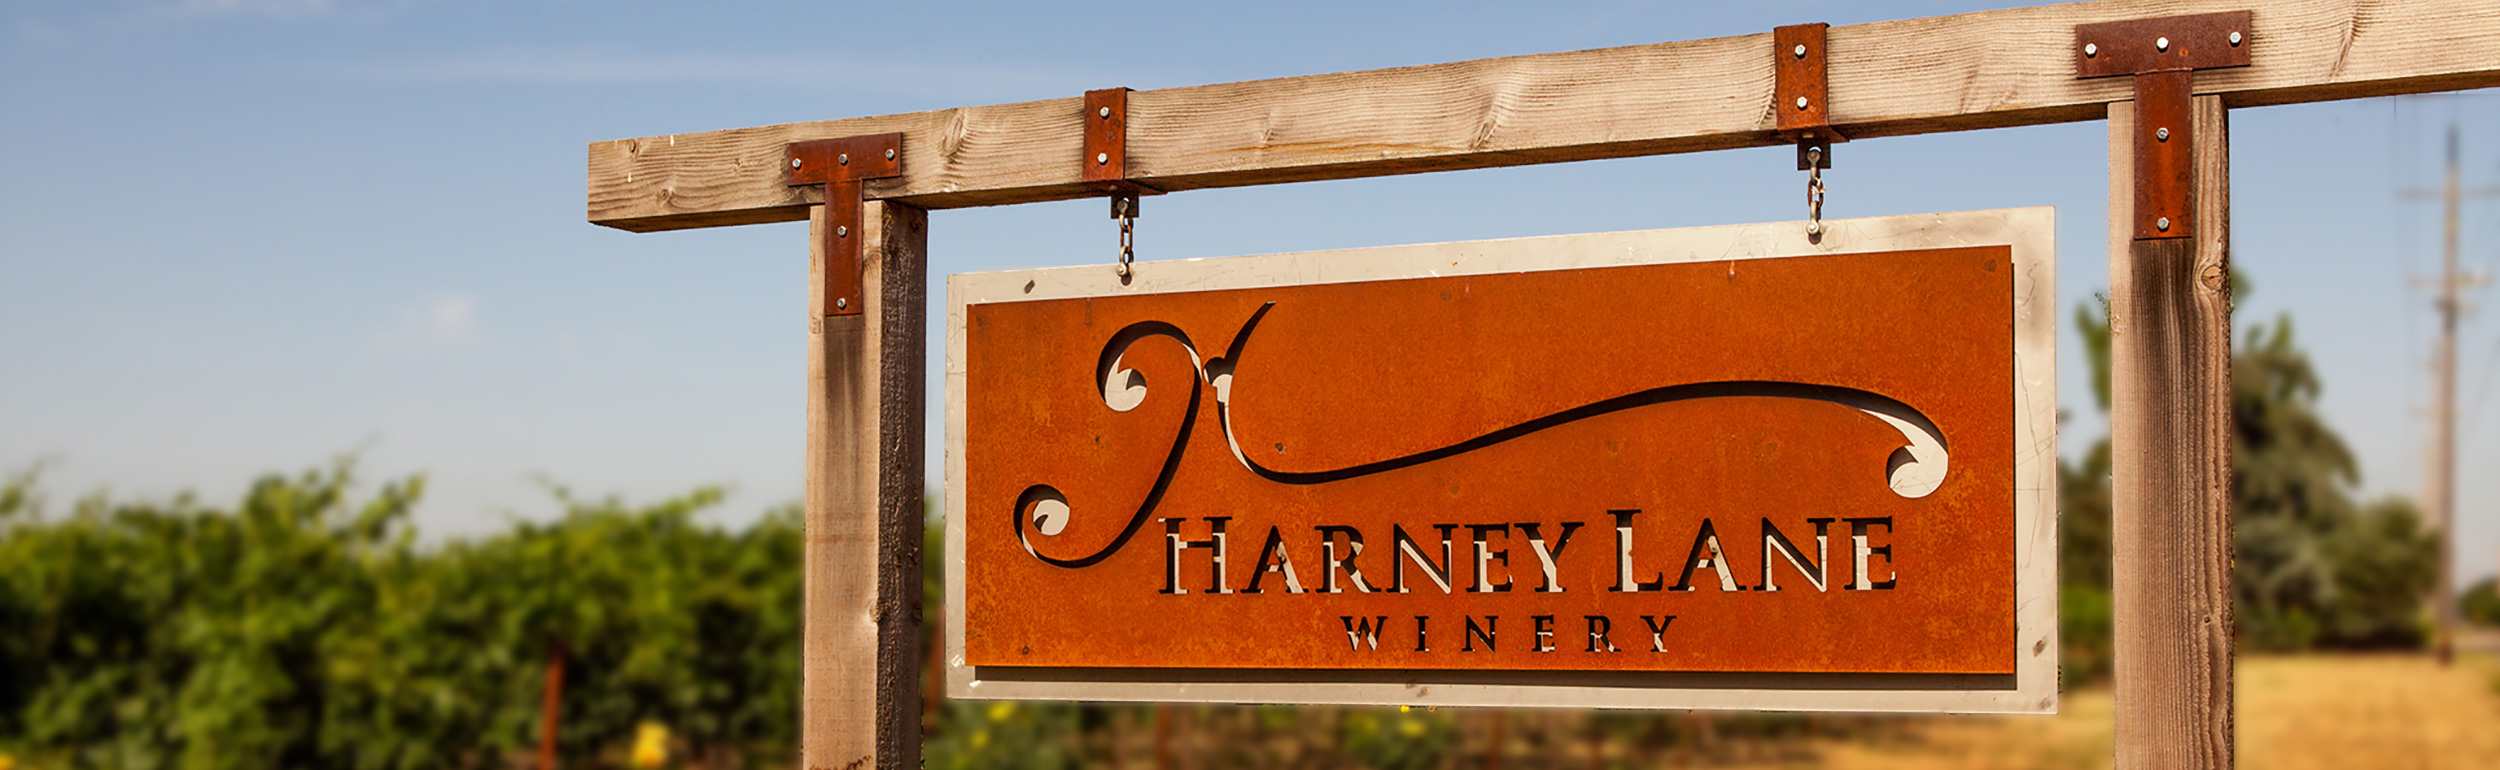 Harney Lane Winery & Vineyards